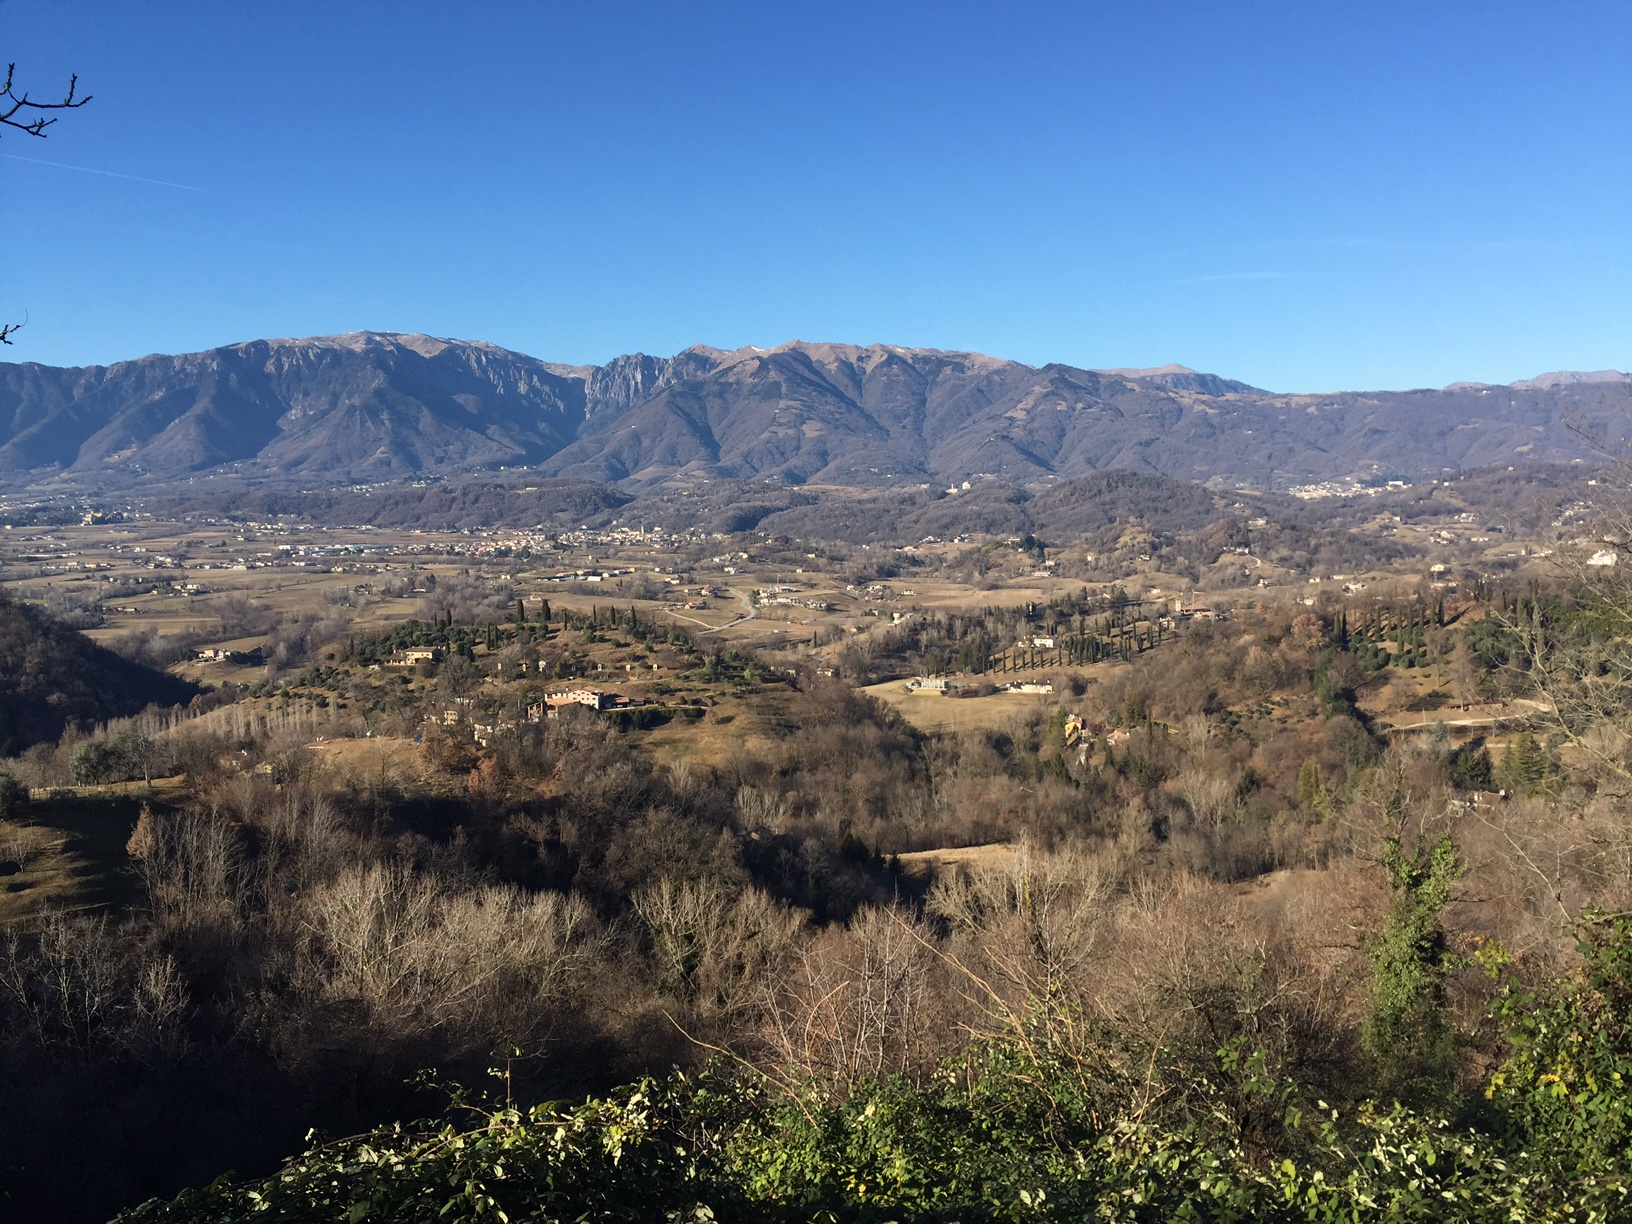 A beautiful view of Crespano, Paderno, Asolo, and the other neighboring towns!